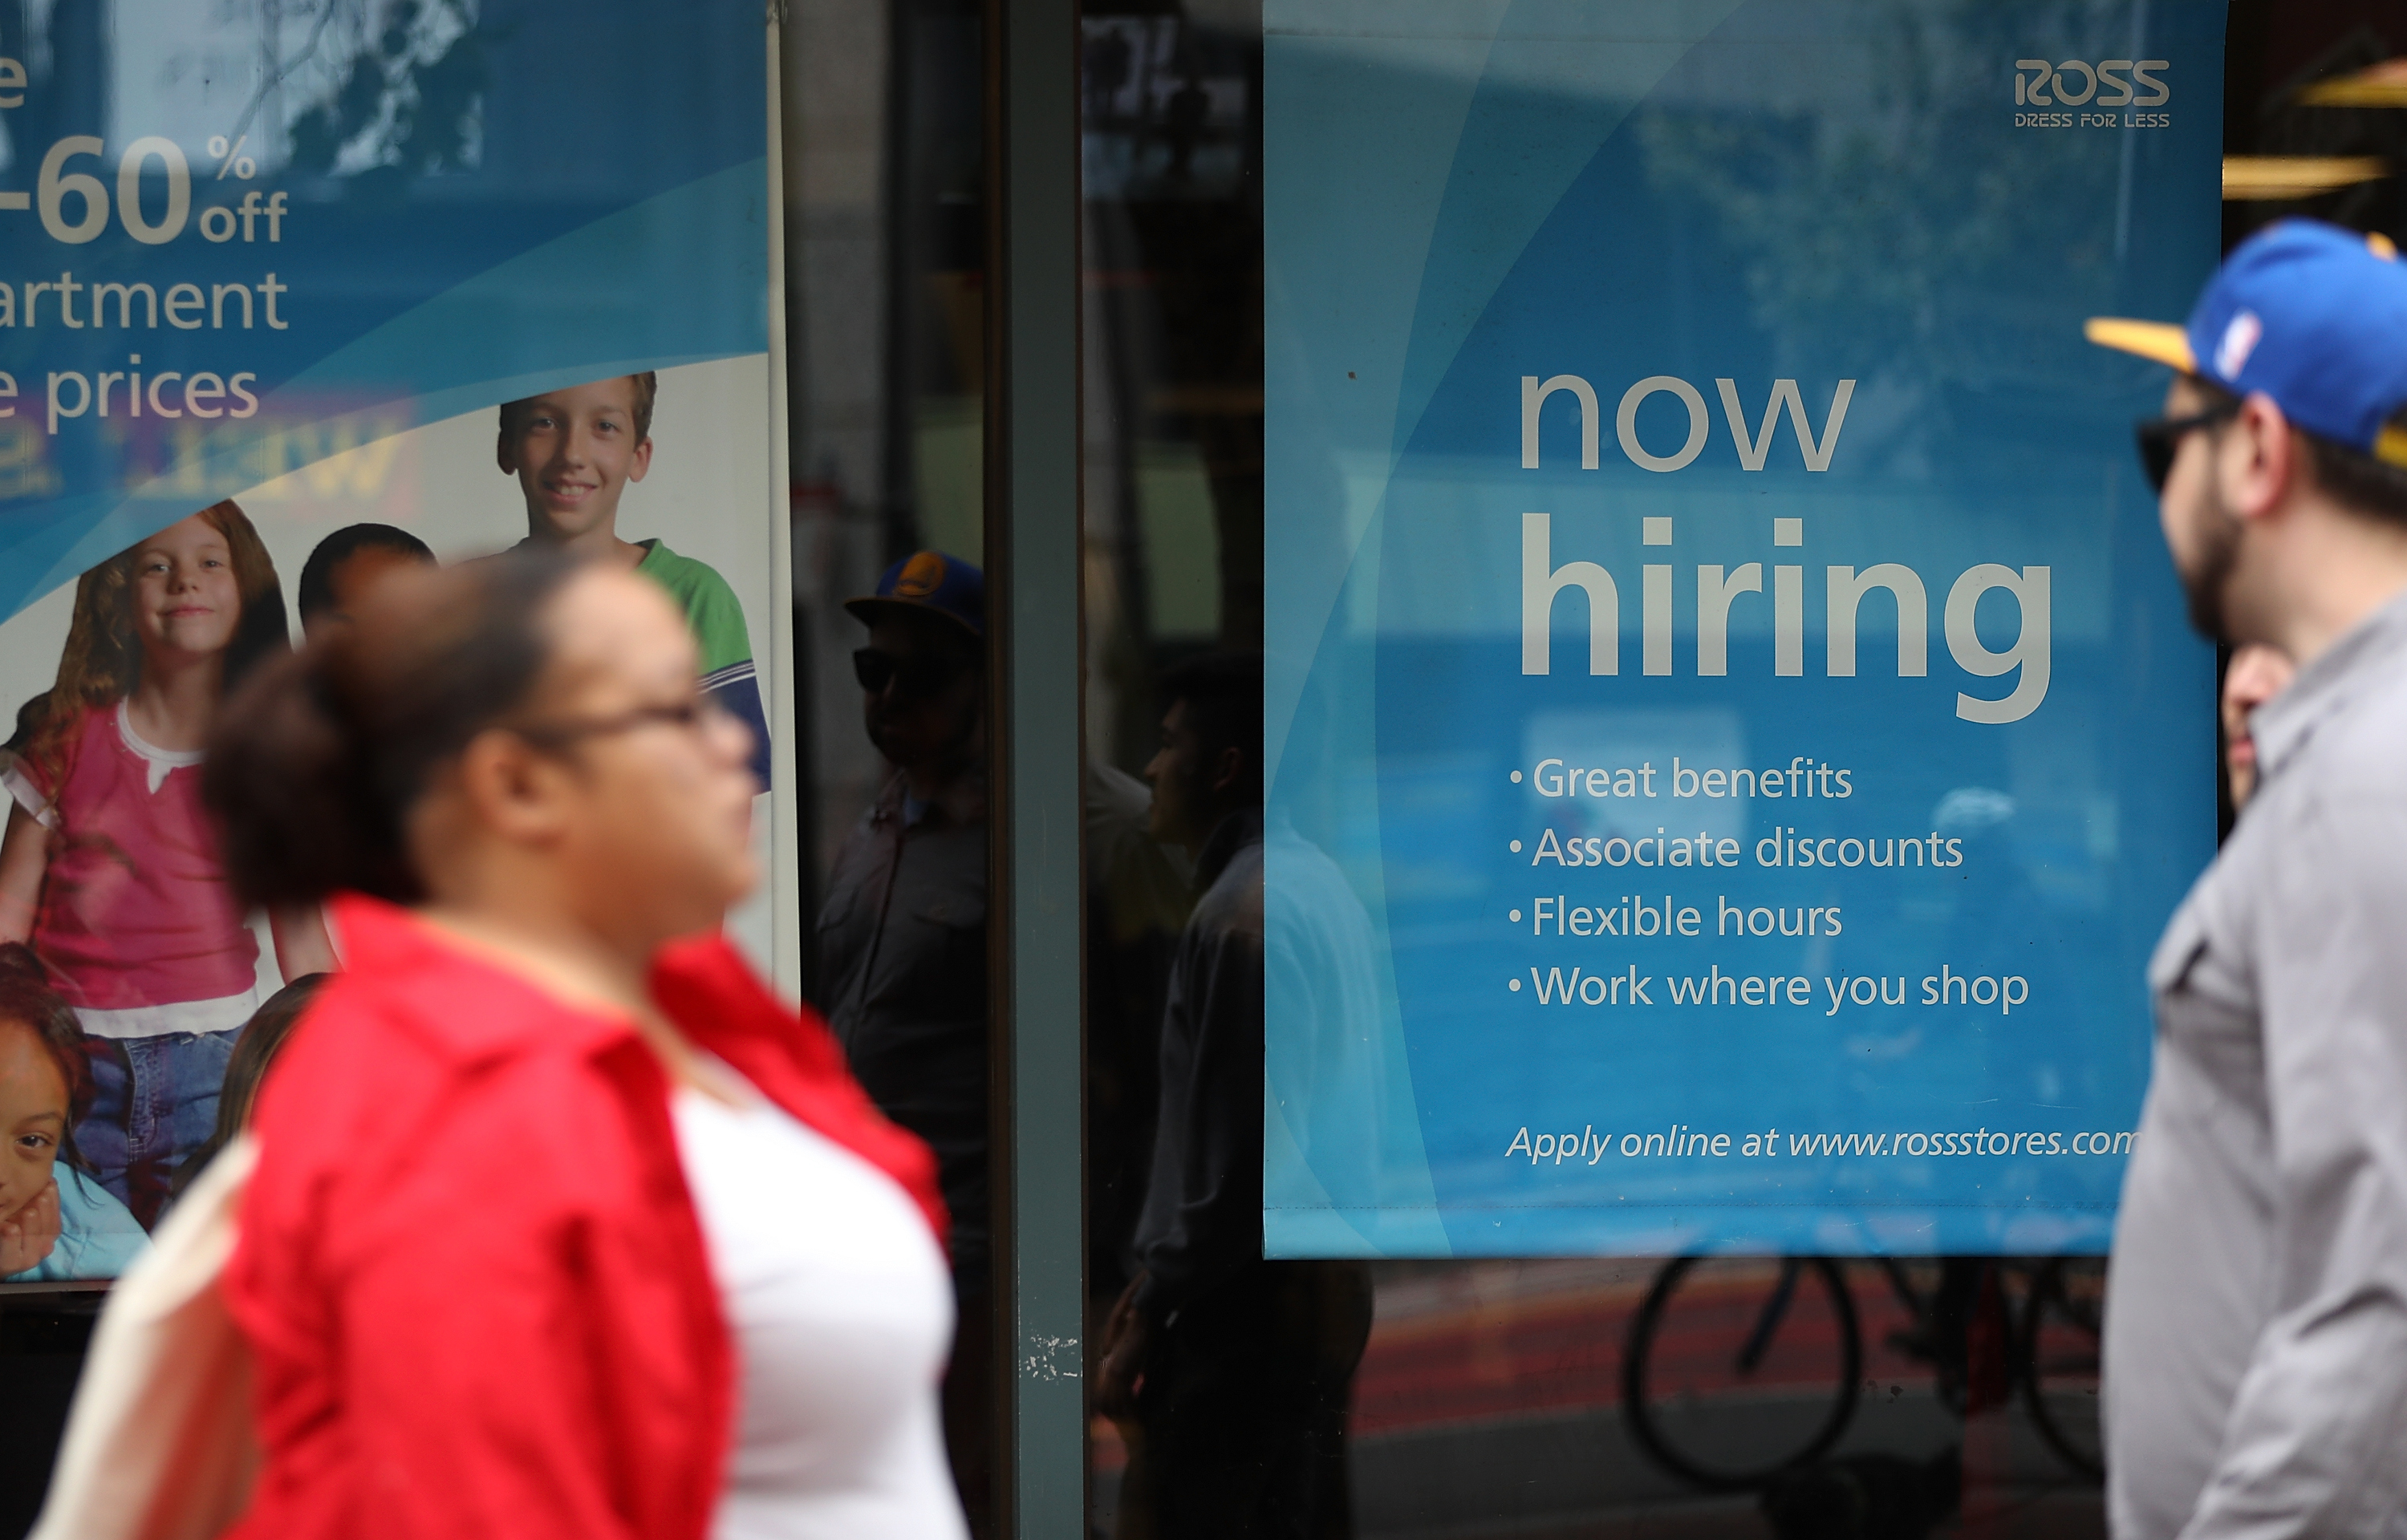 Cheektowaga-based Staffing Solutions of WNY is being accused of discriminatory practices in a lawsuit by the Equal Employment Opportunity Commission. (Getty Images)